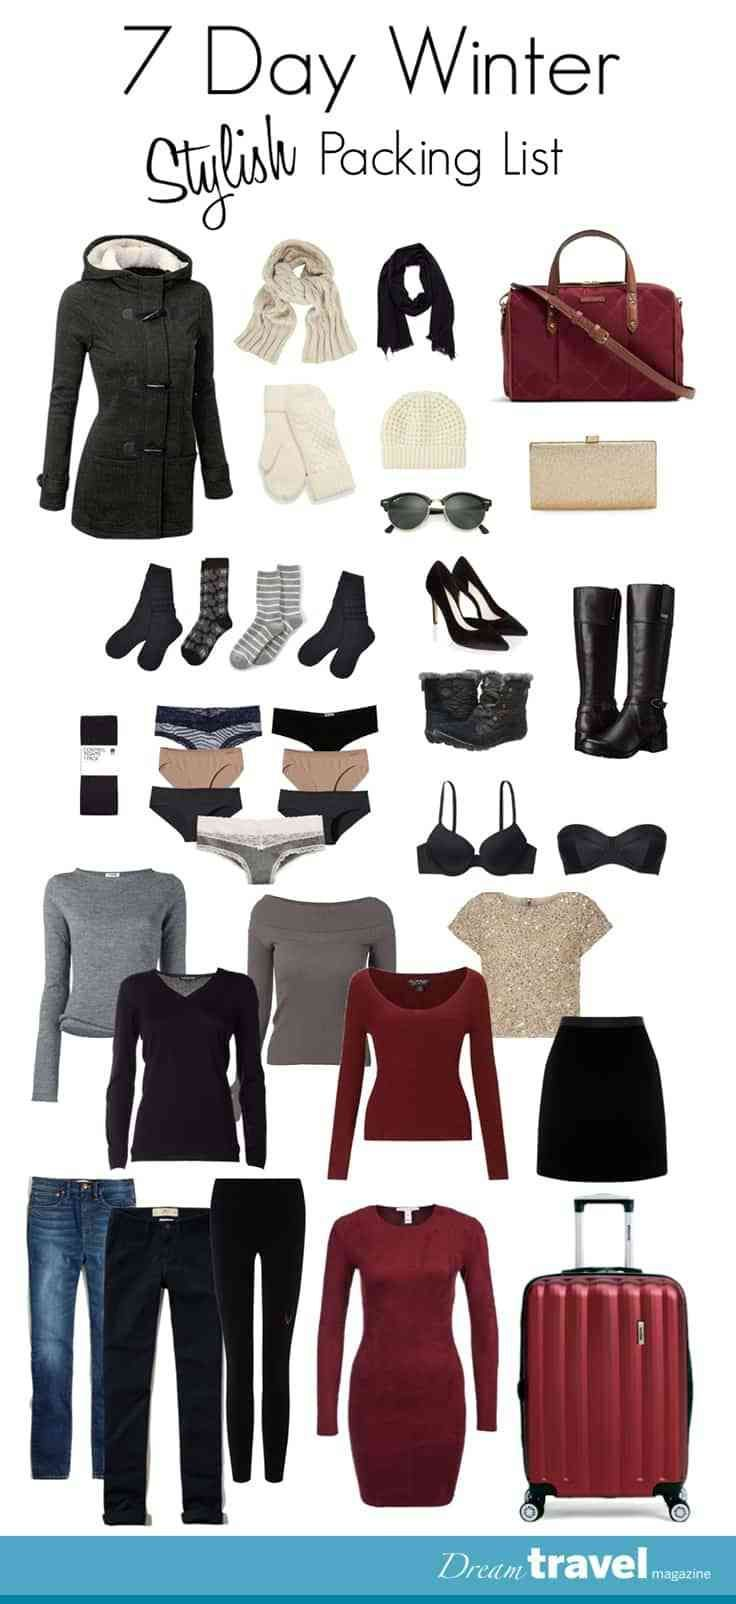 Packing for the winter does not have to be difficult. Pack clothes with two things in mind mix and matching and layering. Complimentary colours and items that can be dressed up or down will make packing for winter vacations in the city a breeze. More